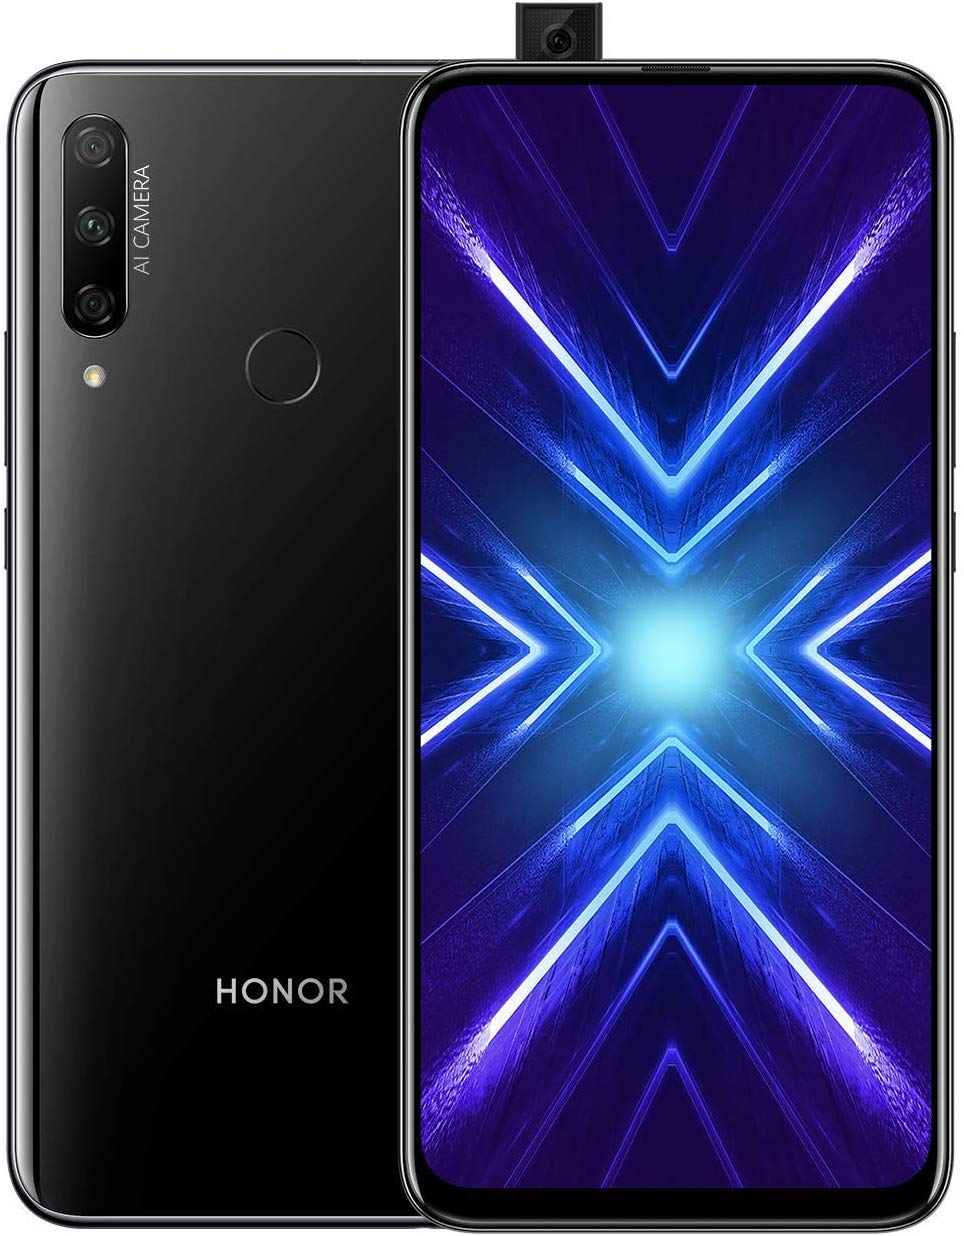 Honor 9X Smartphone Features Review